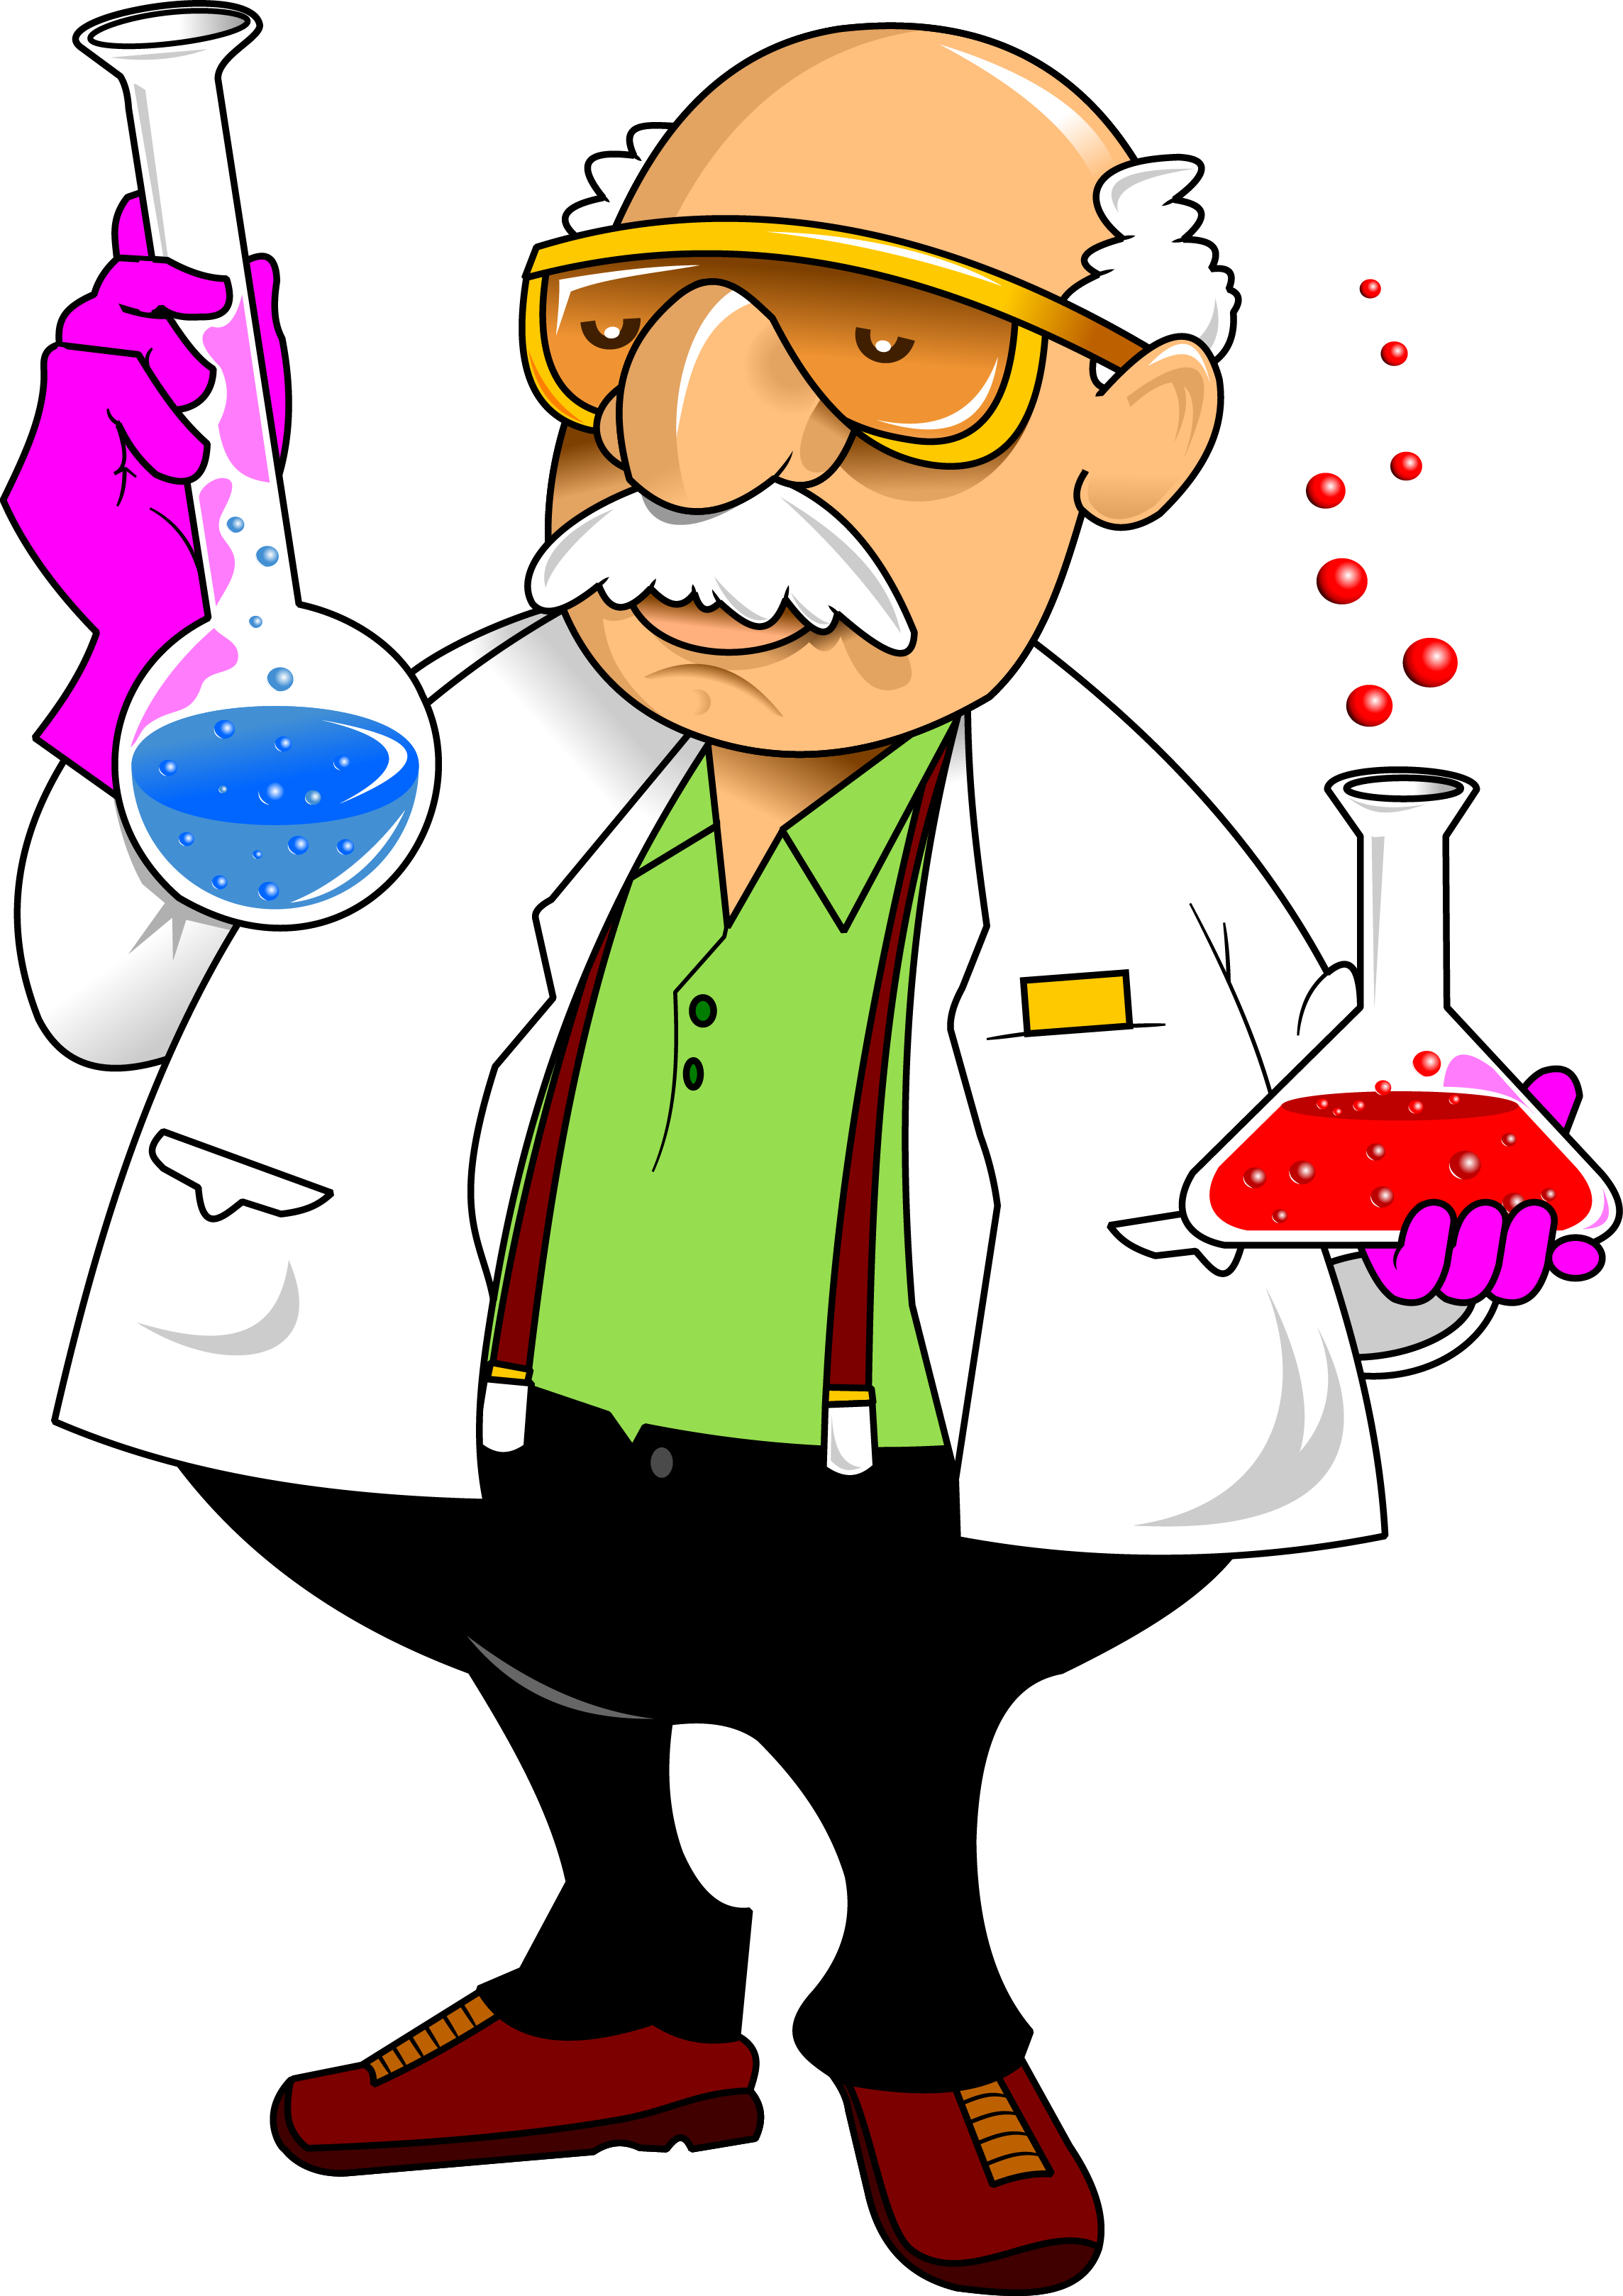 Apple science experiment clipart jpg library download Laboratory Chemistry Cartoon Science - experiment 2288*3236 ... jpg library download